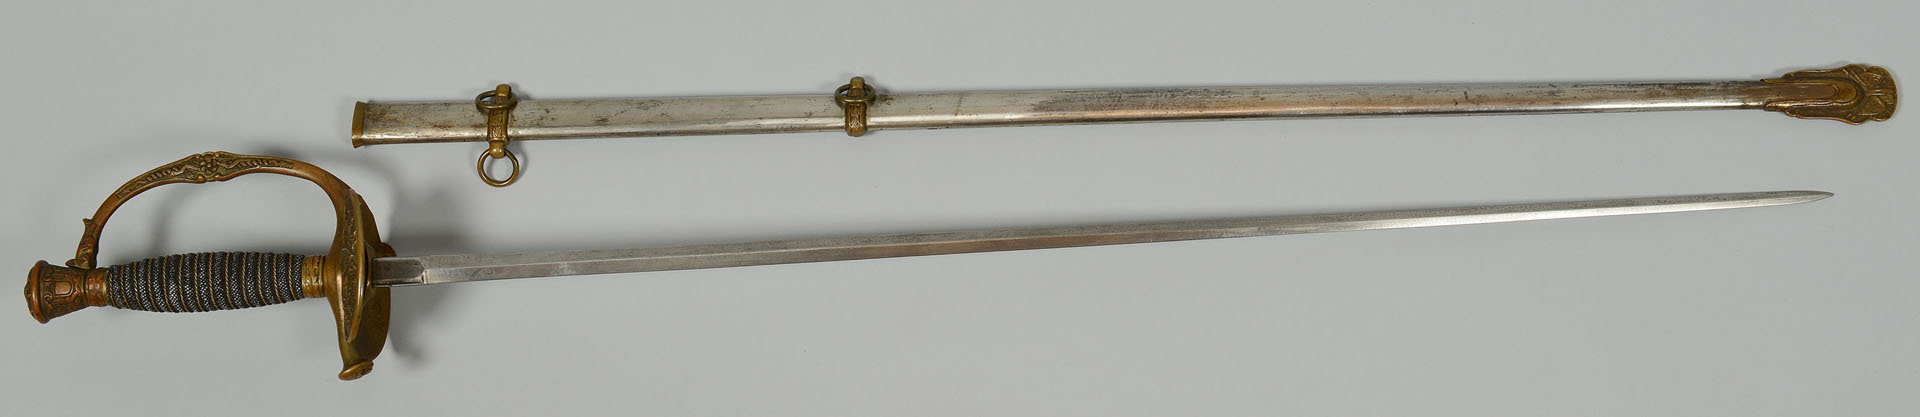 Lot 83: Ames M1860 Sword & Scabbard, William Geary